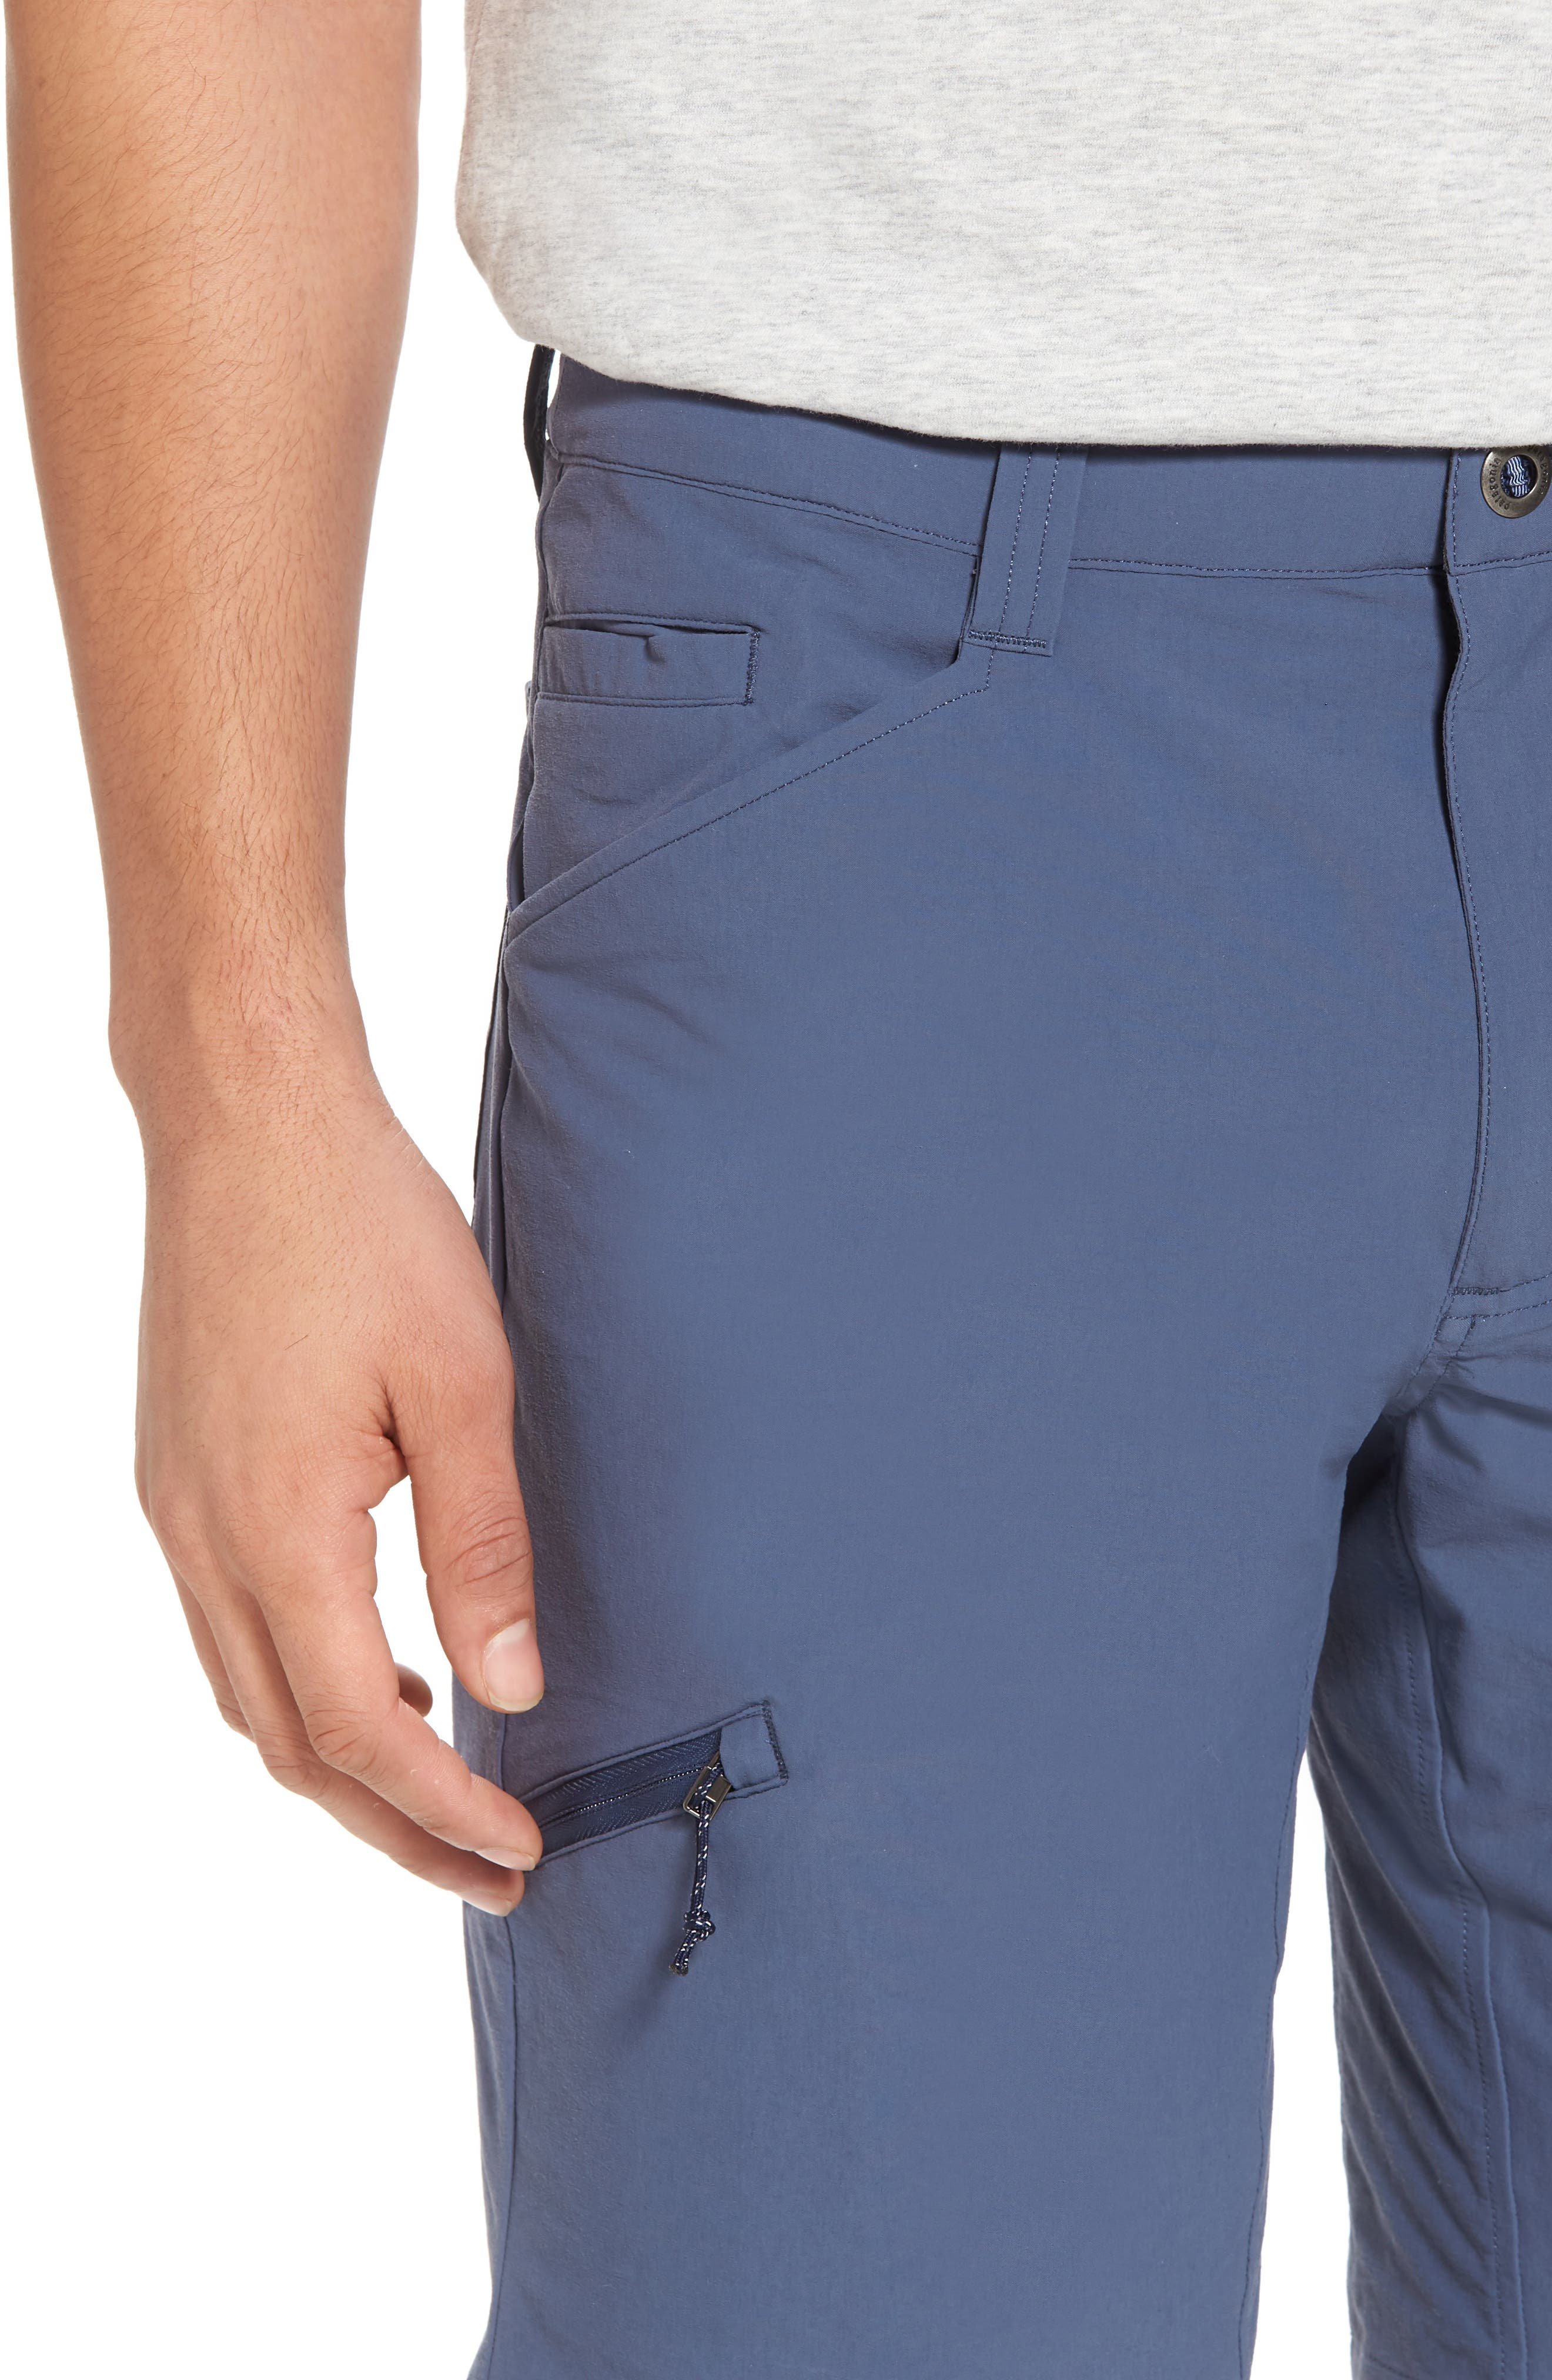 Quandary Shorts,                             Alternate thumbnail 4, color,                             Dolomite Blue